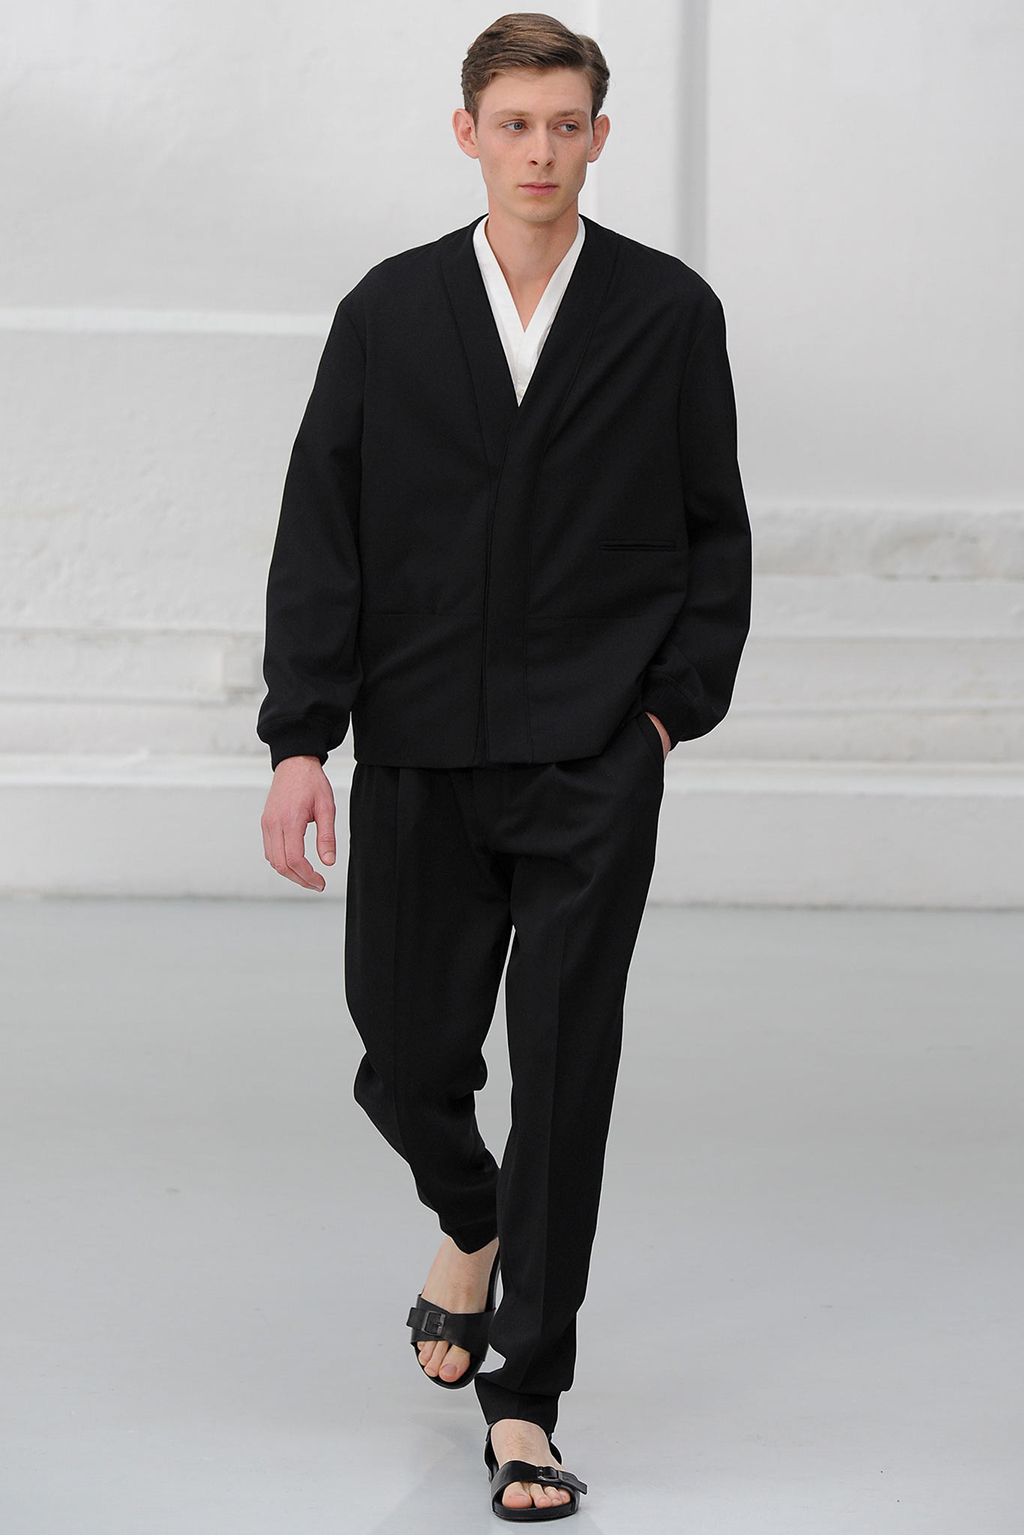 Christophe Lemaire SS15